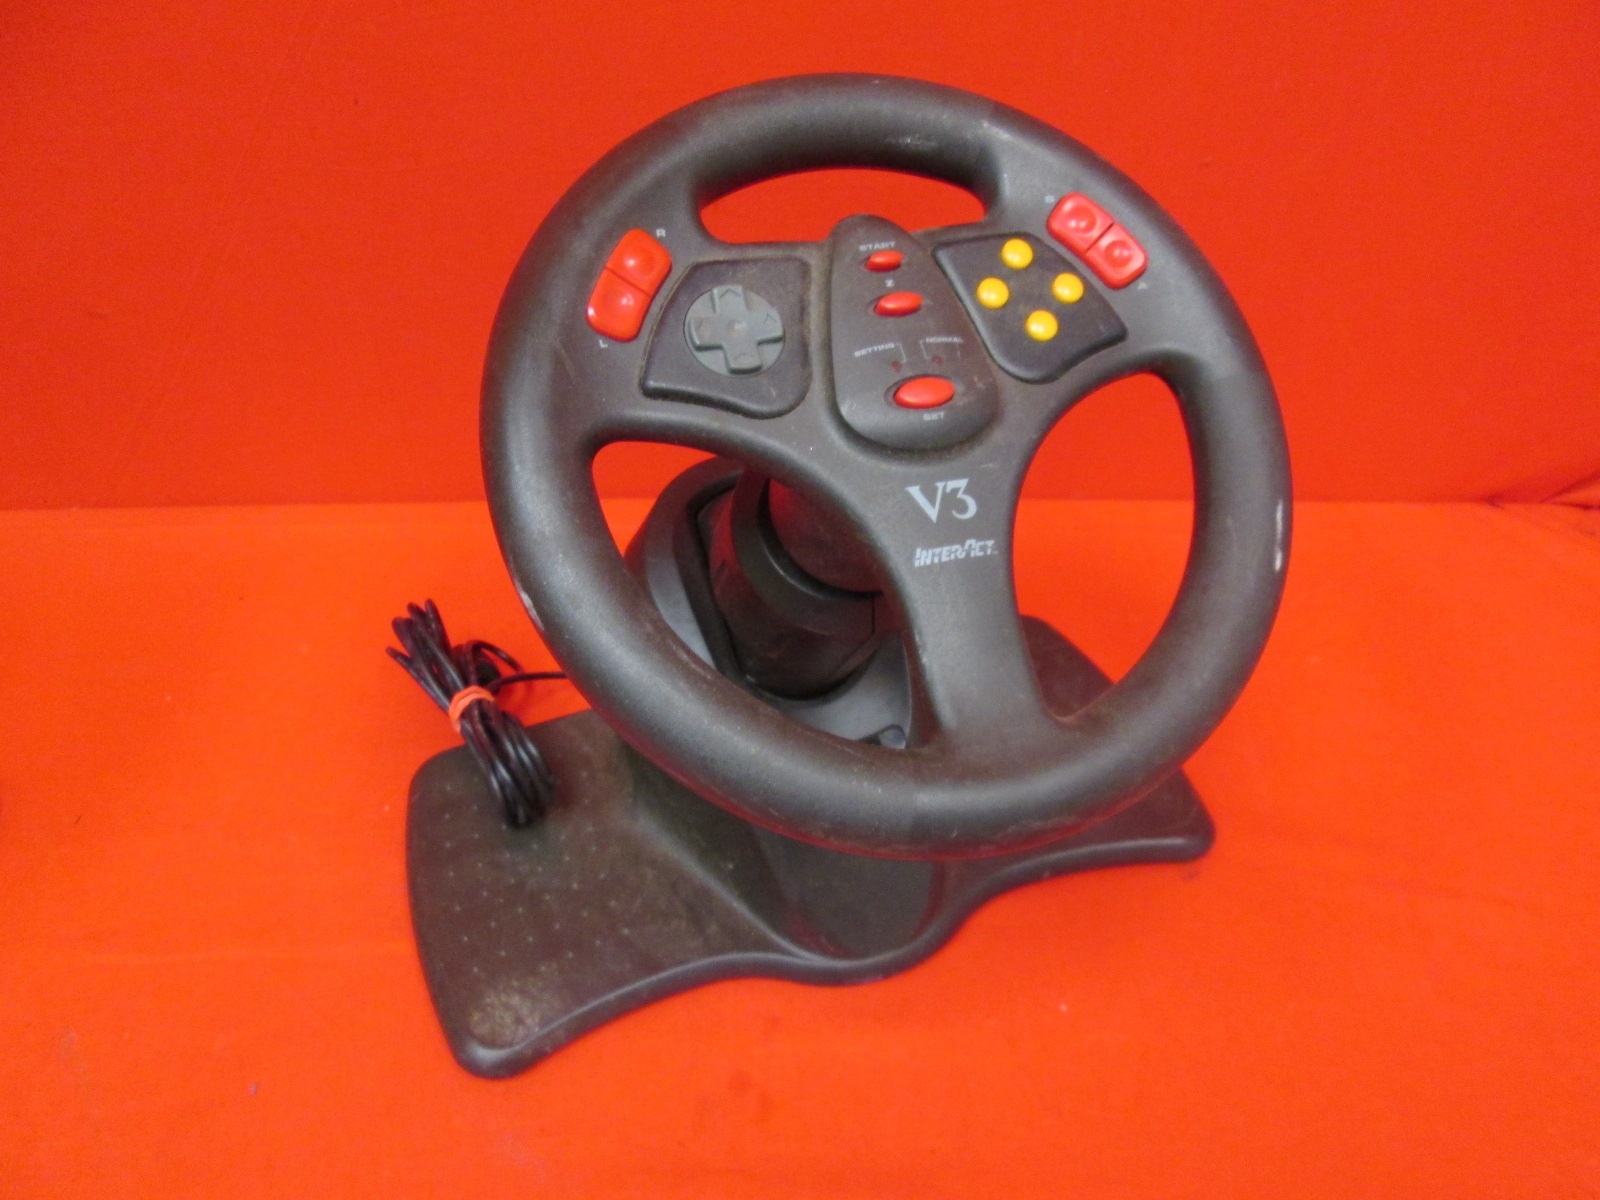 Interact V3 Racing Wheel Only Psx SV-1118 For PS1 PS2 Incomplete